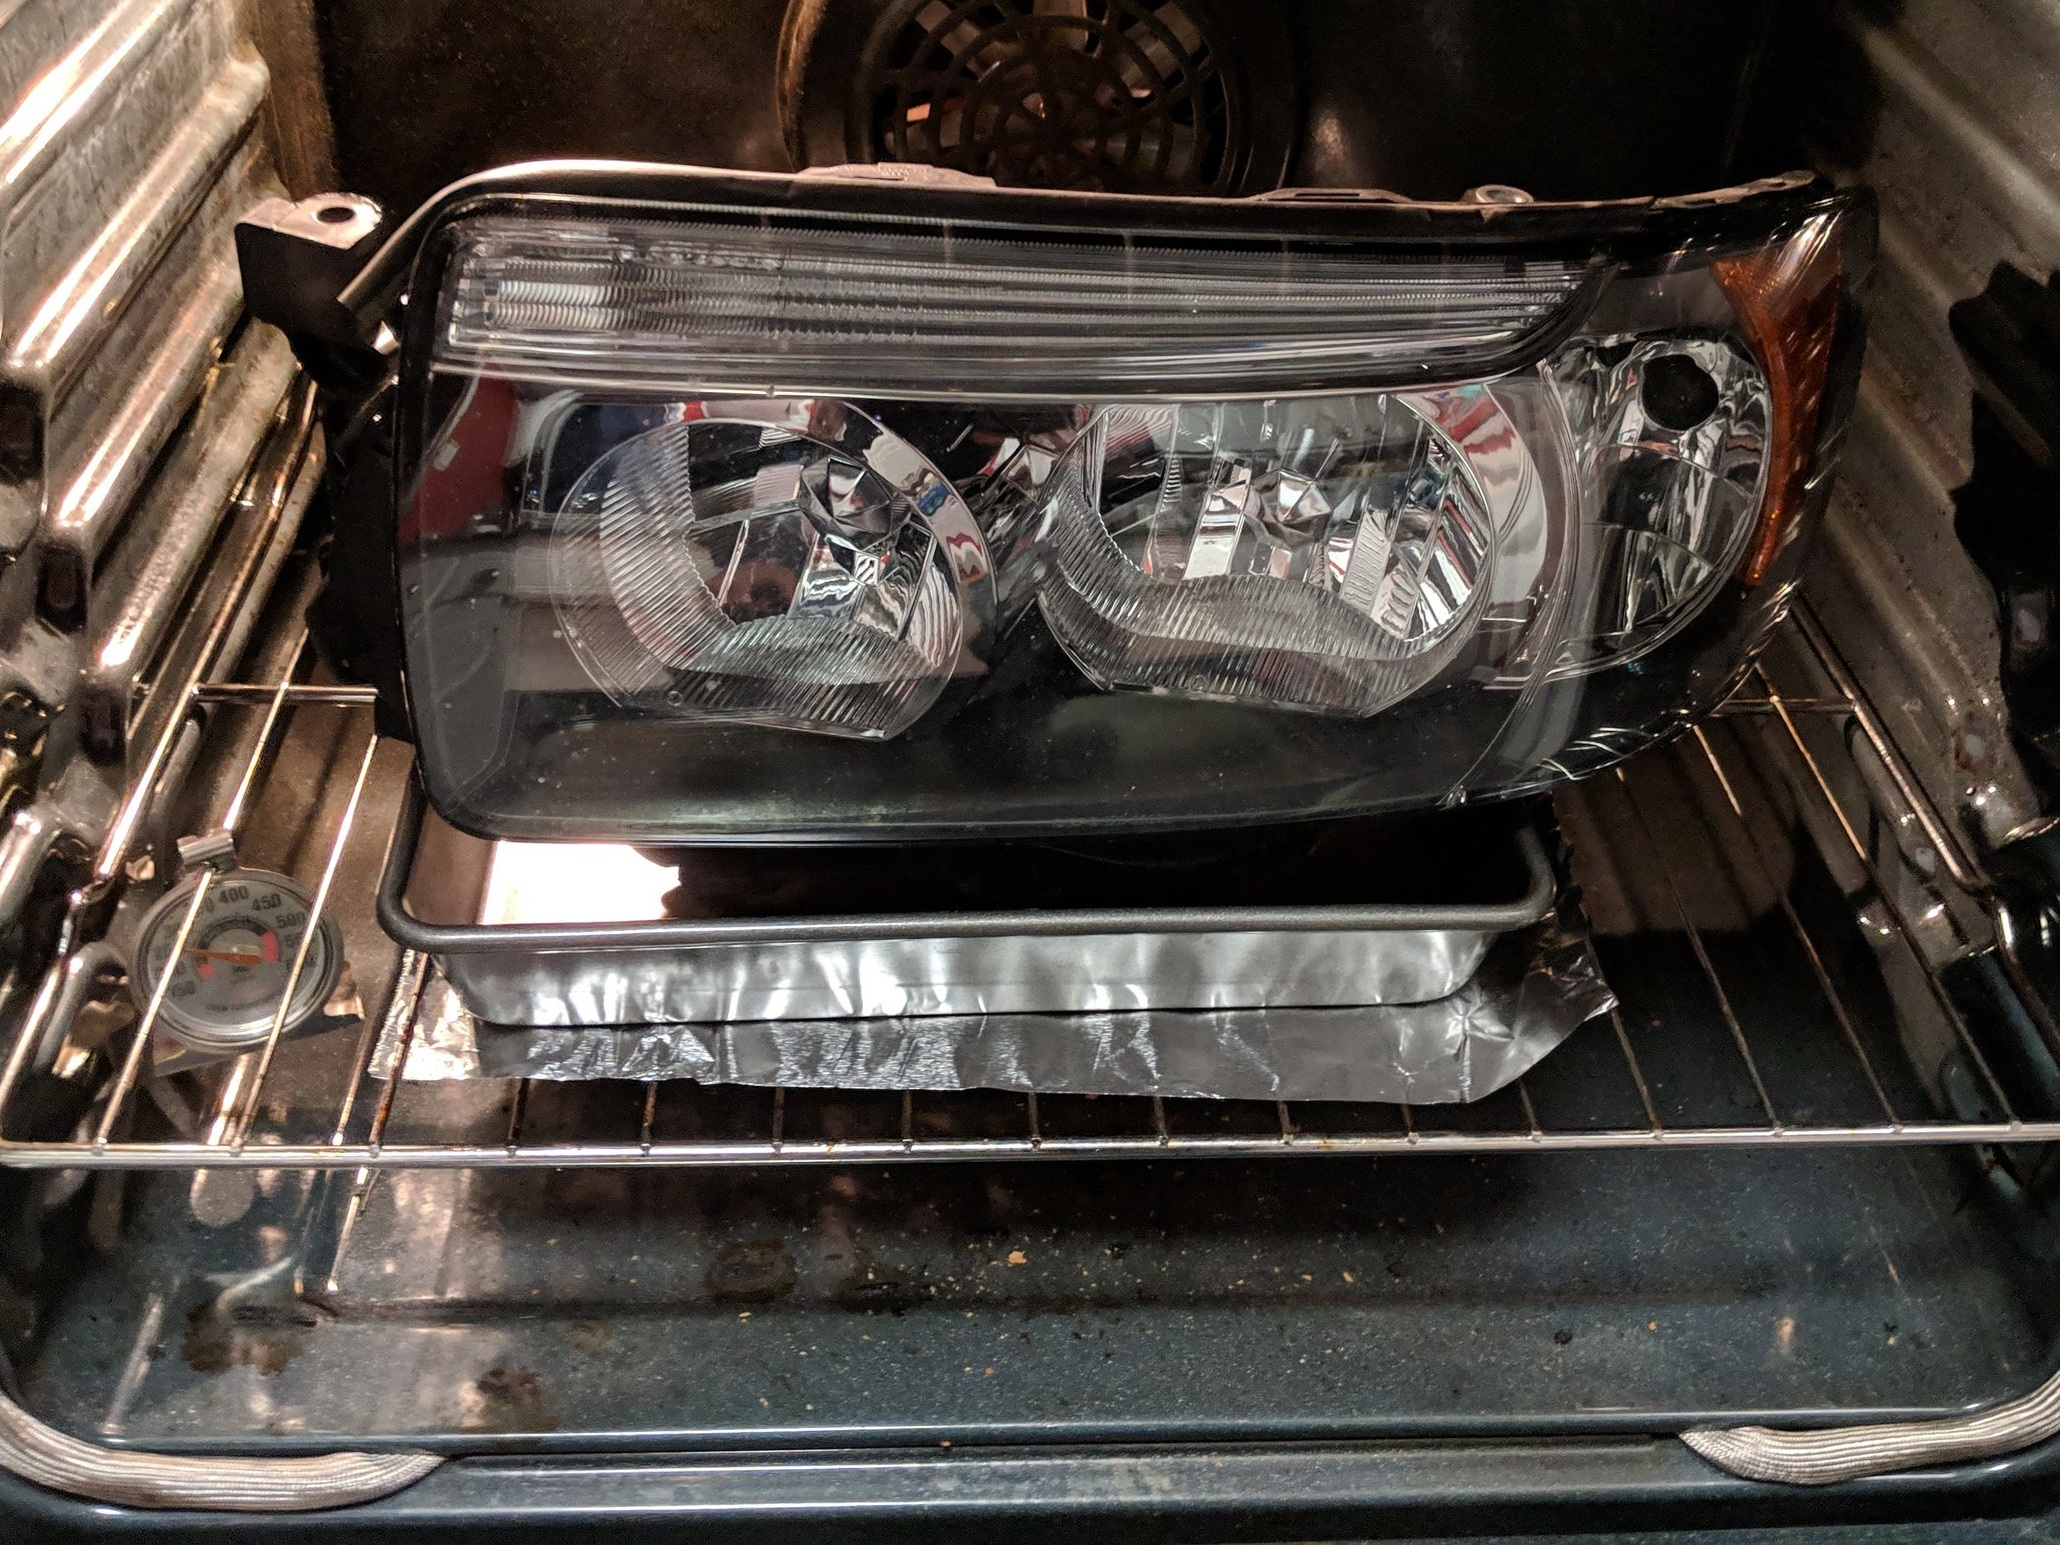 Back into the oven to ready the butyl for resealing the headlight.